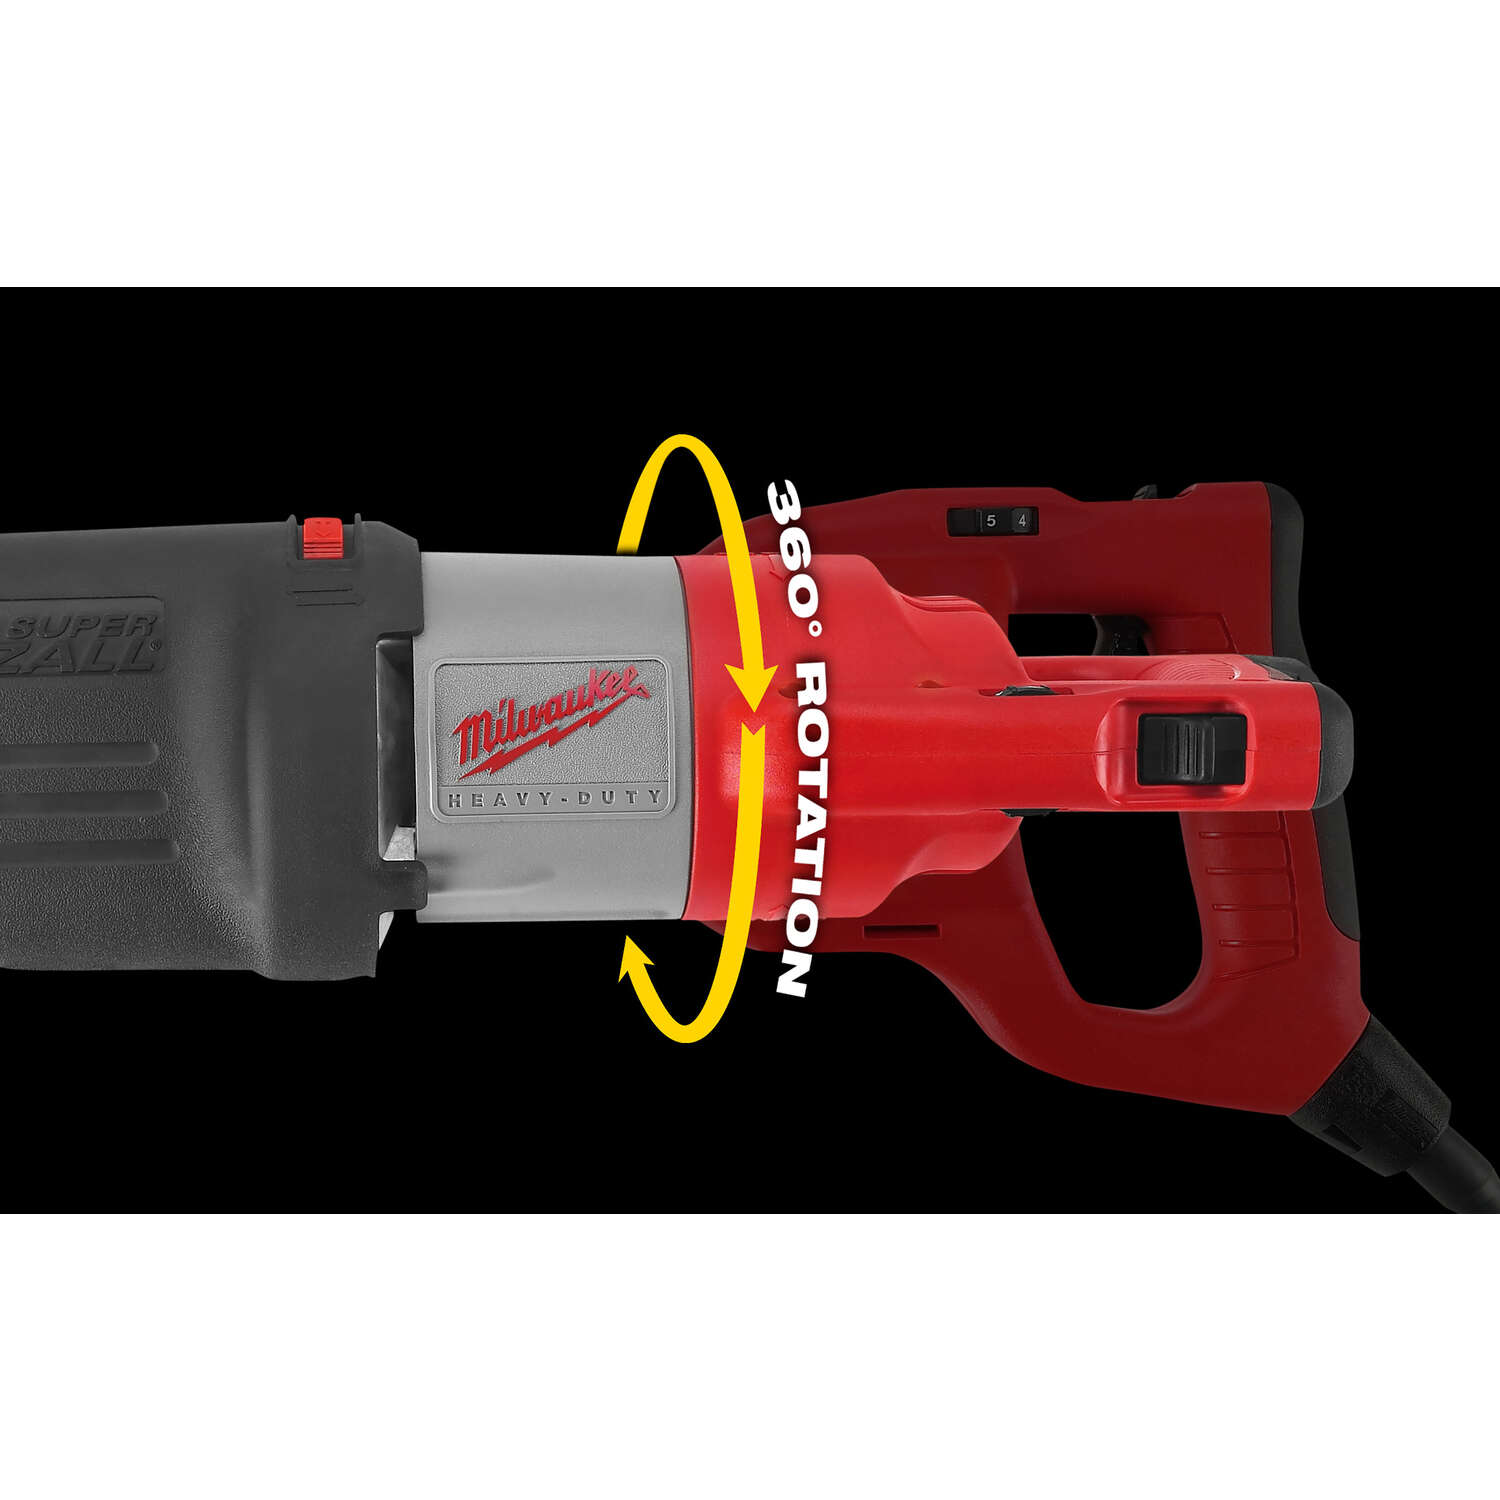 Milwaukee  SAWZALL  Corded  1-1/4 in. Reciprocating Saw  13 amps 3000 spm